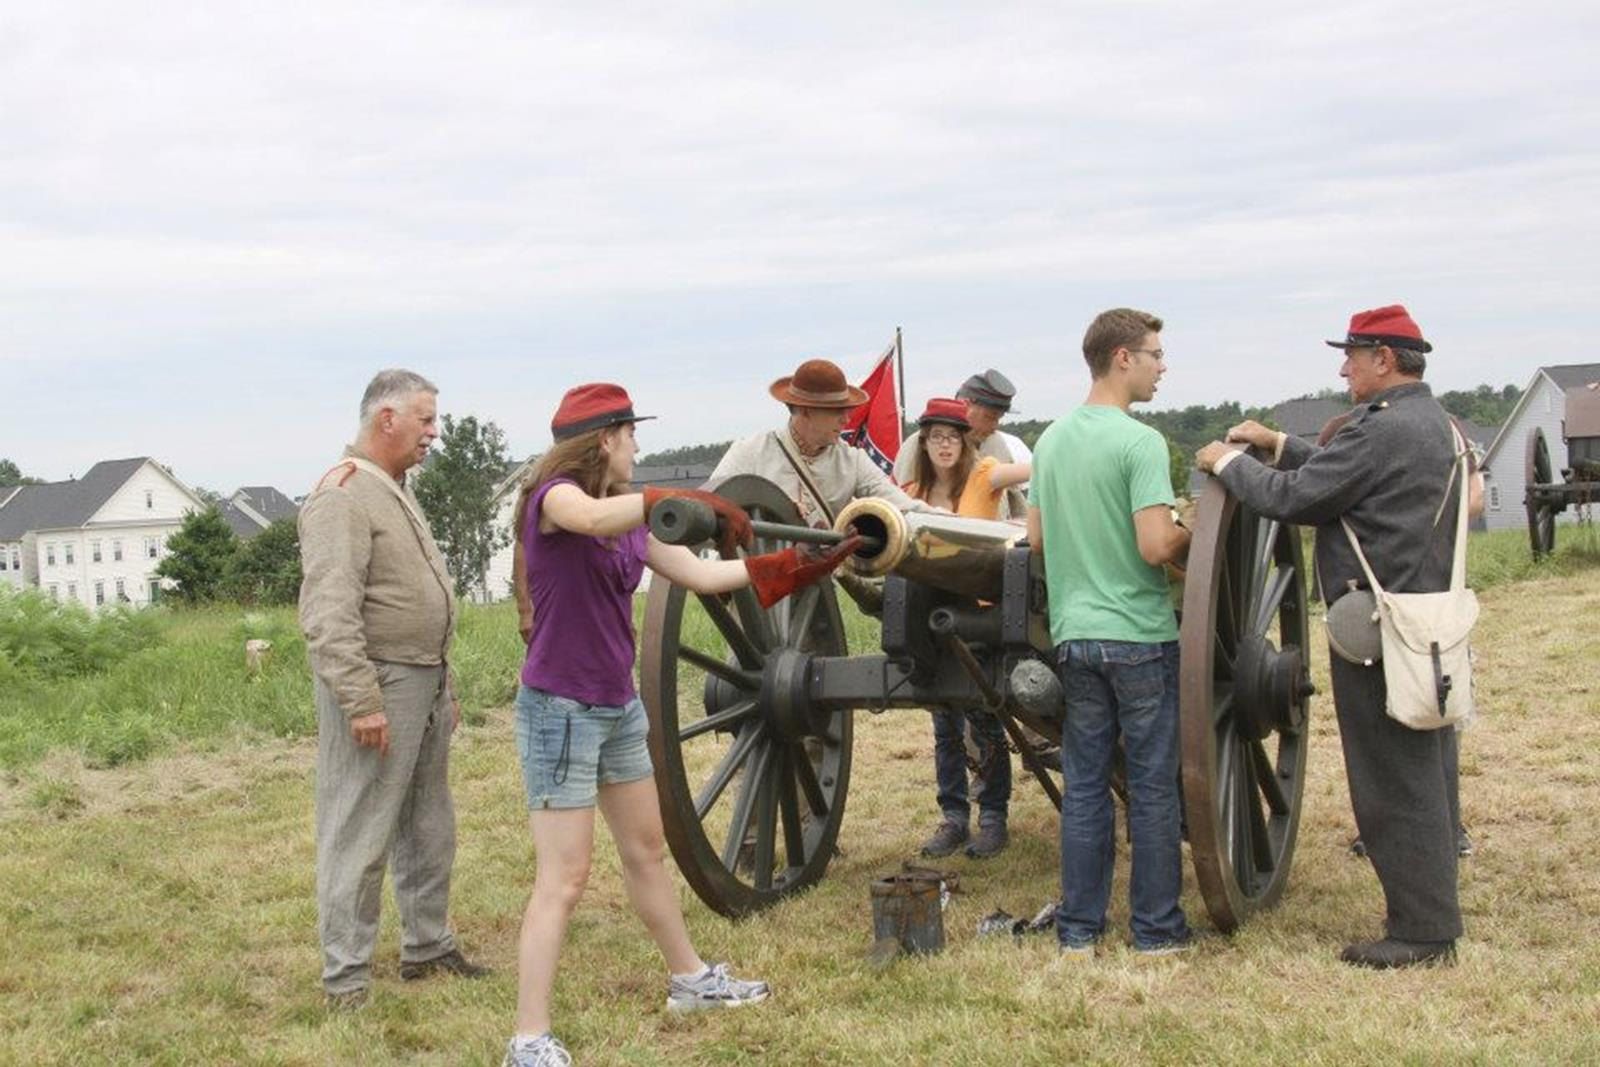 Students explore Manassas National Battlefield Park